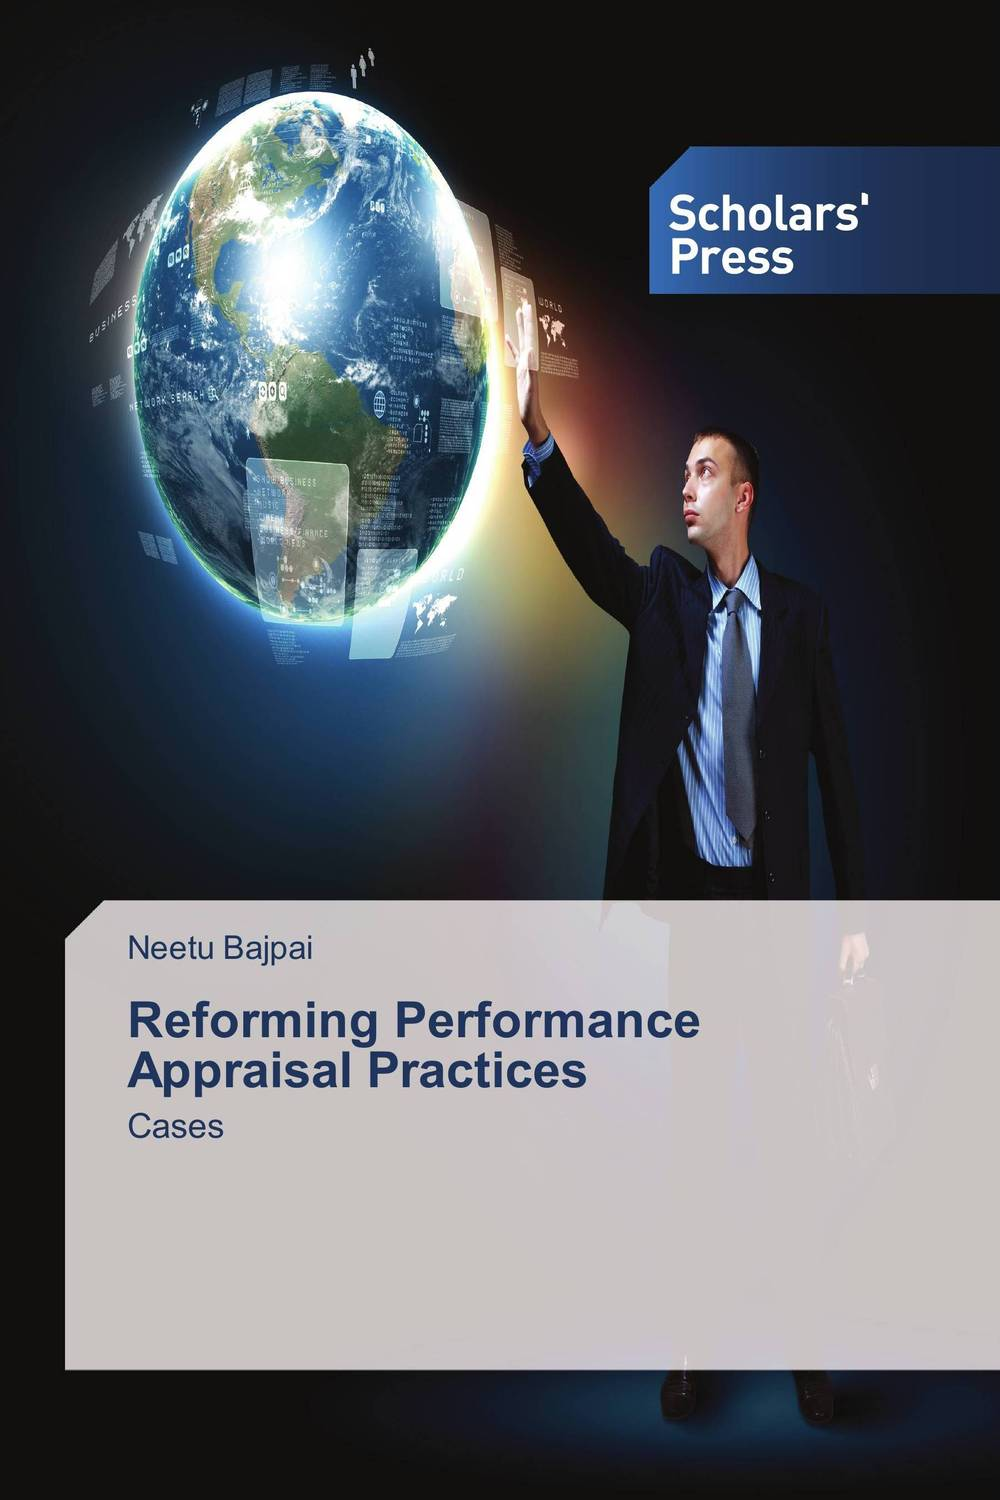 Reforming Performance Appraisal Practices trends in human performance research